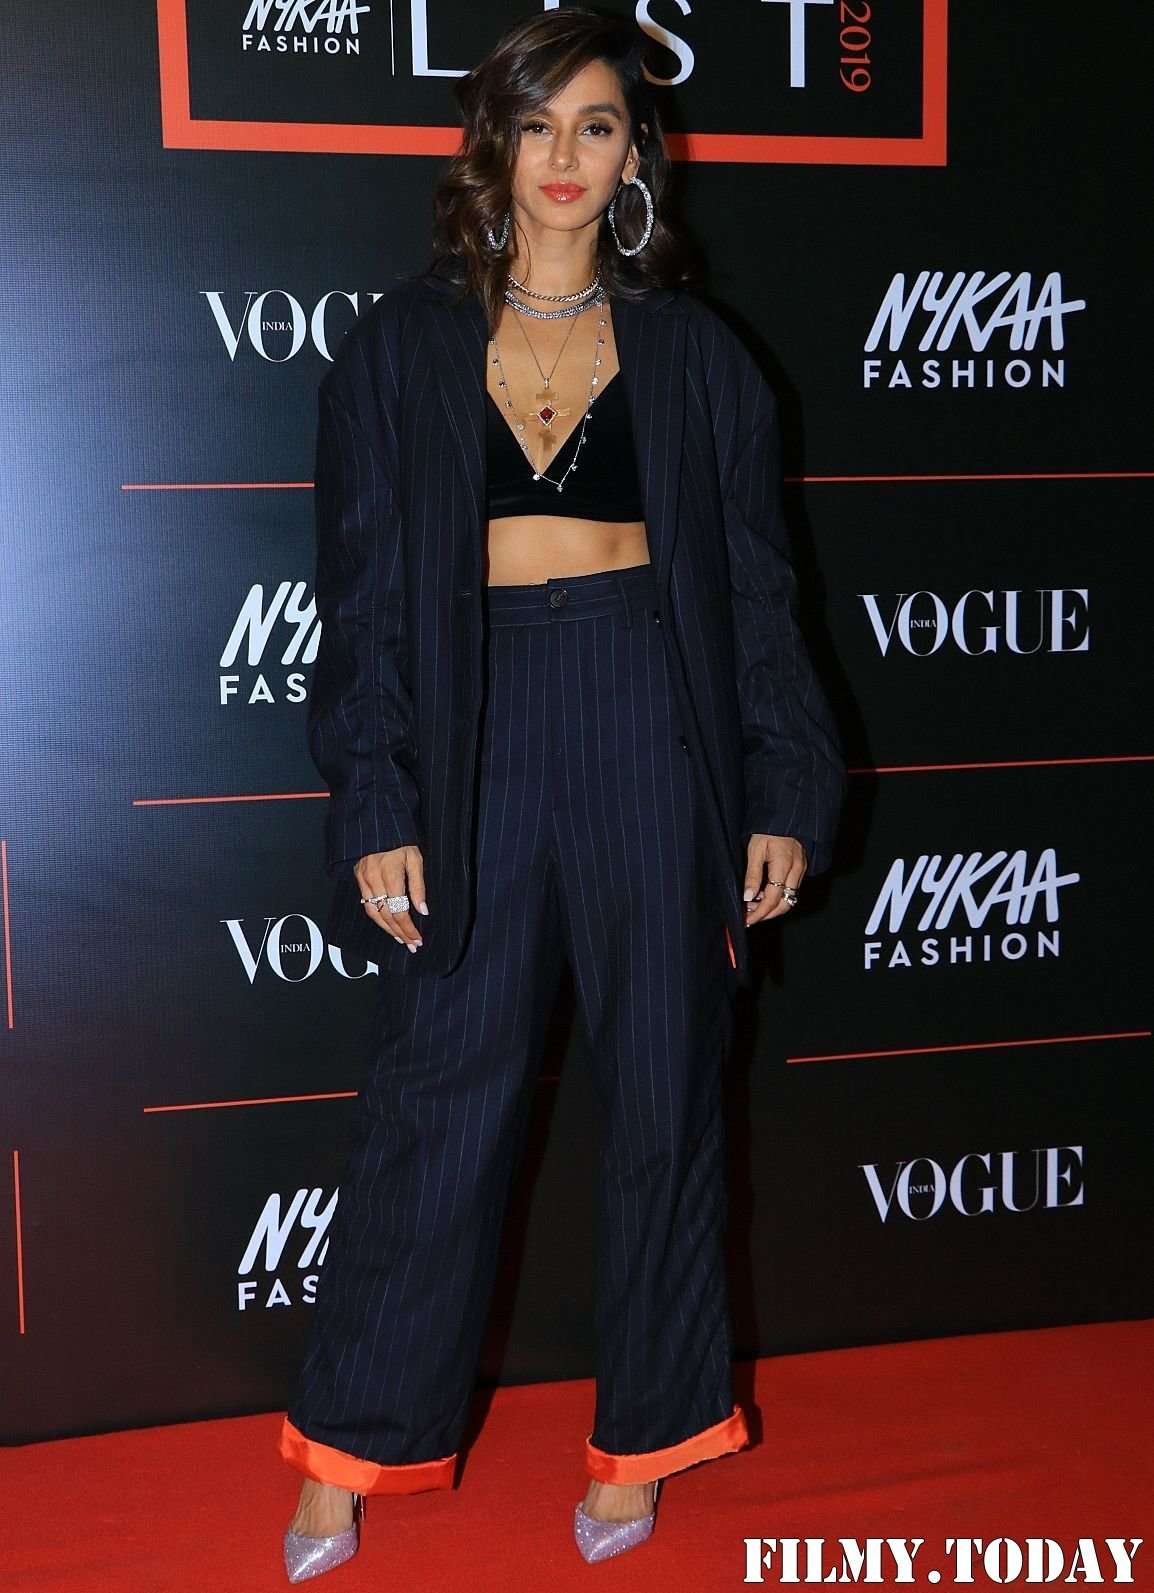 Shibani Dandekar - Photos: Celebs At Vogue The Power List 2019 At St Regis Hotel | Picture 1706354